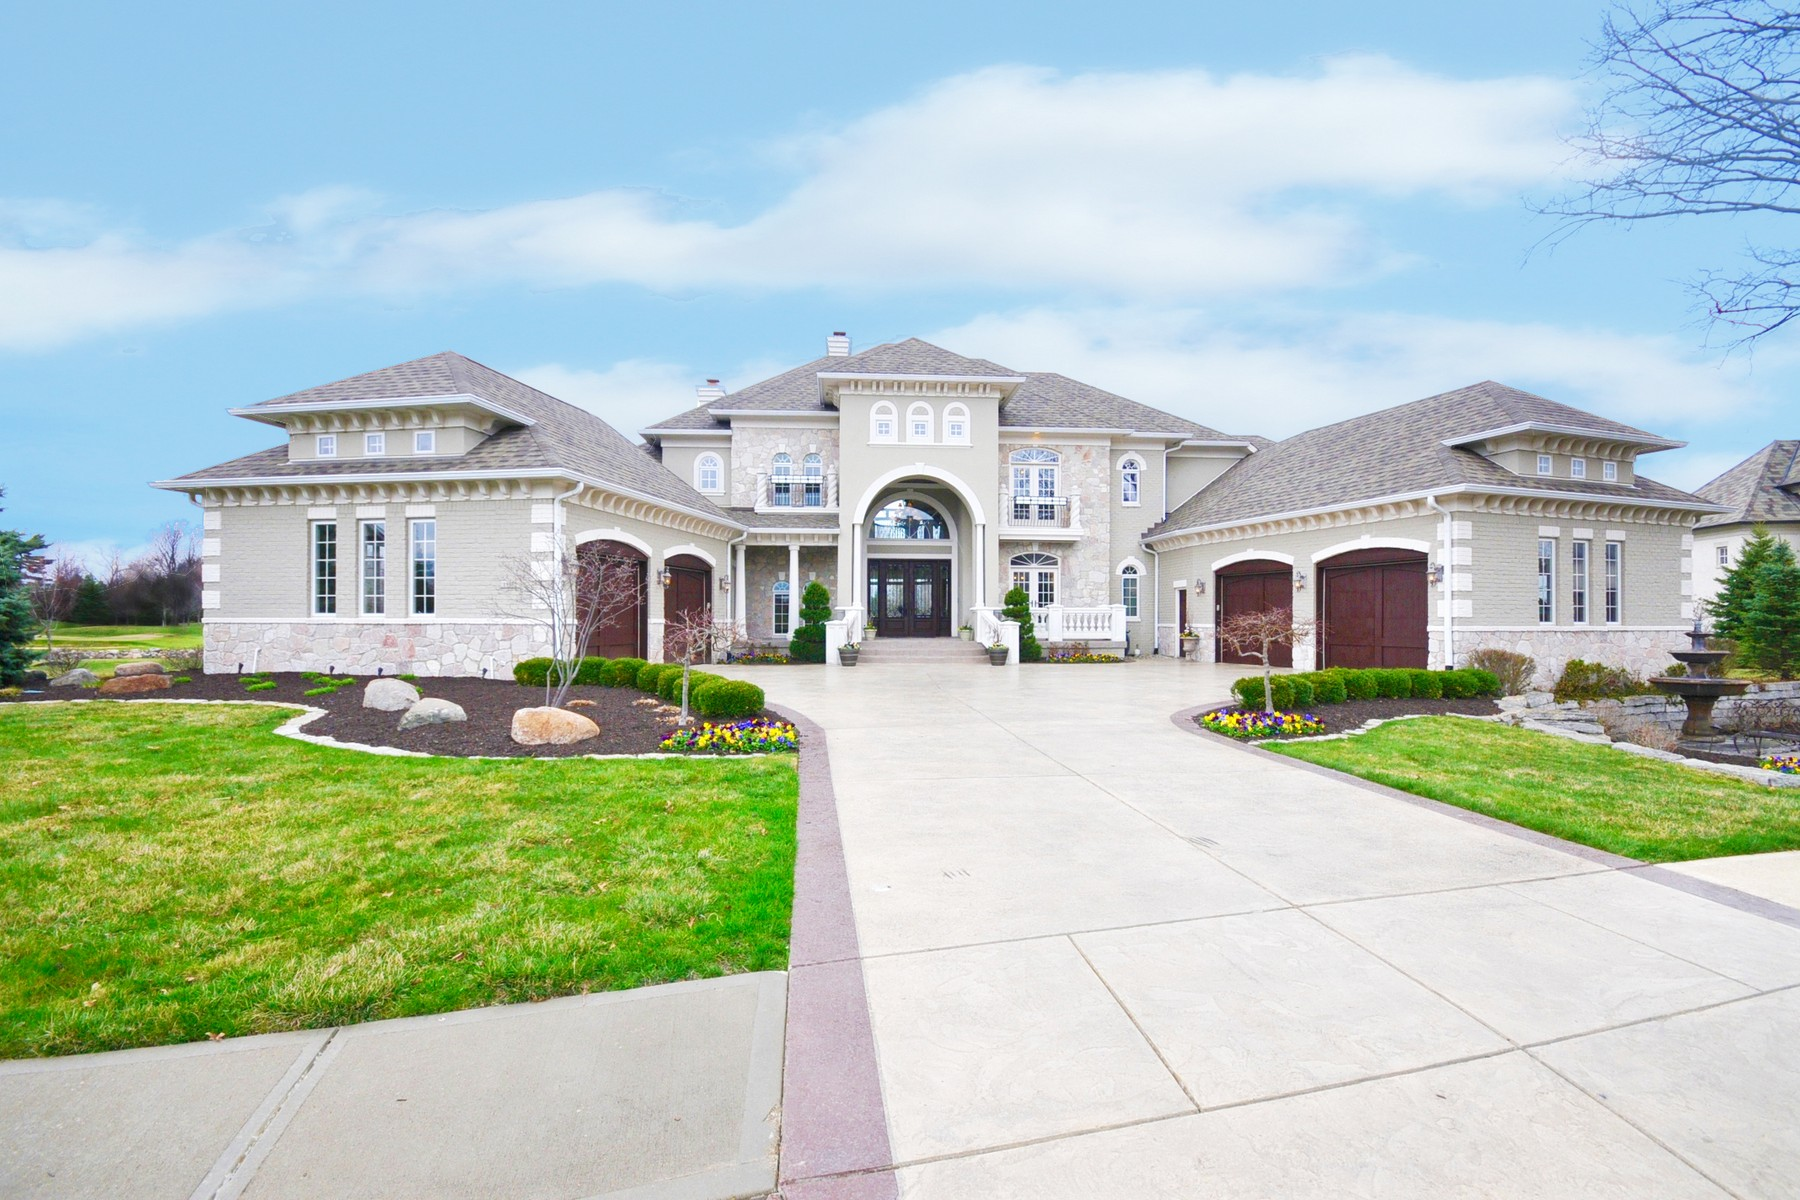 Single Family Home for Sale at Exquisite Exclusive Estate Home 15362 Whistling Lane Carmel, Indiana 46033 United States